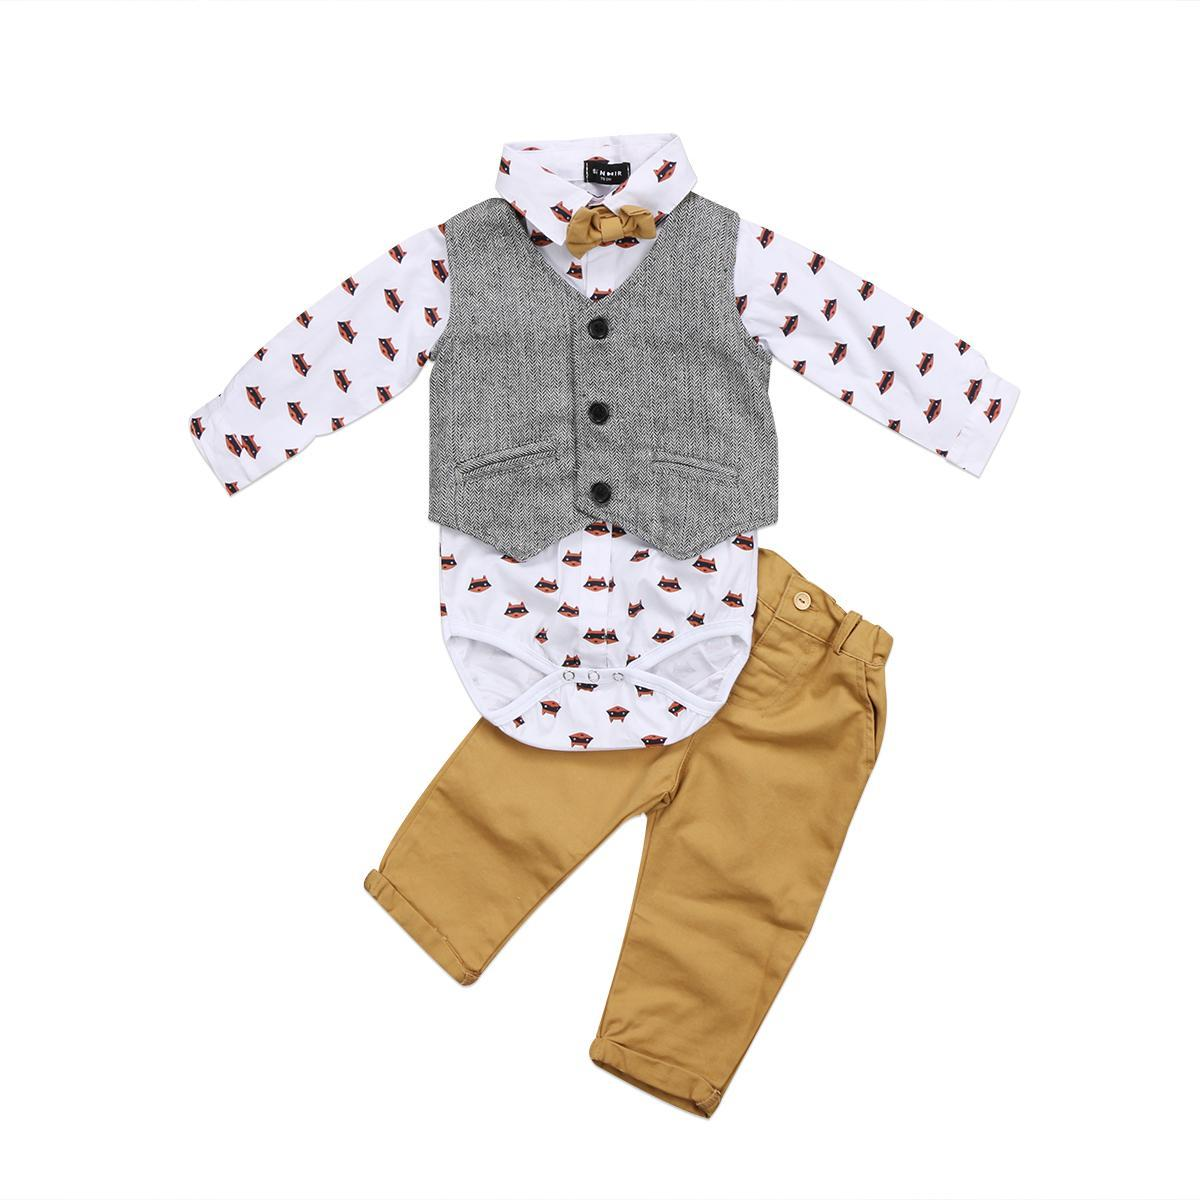 Gentleman Casual Suit - The Trendy Toddlers